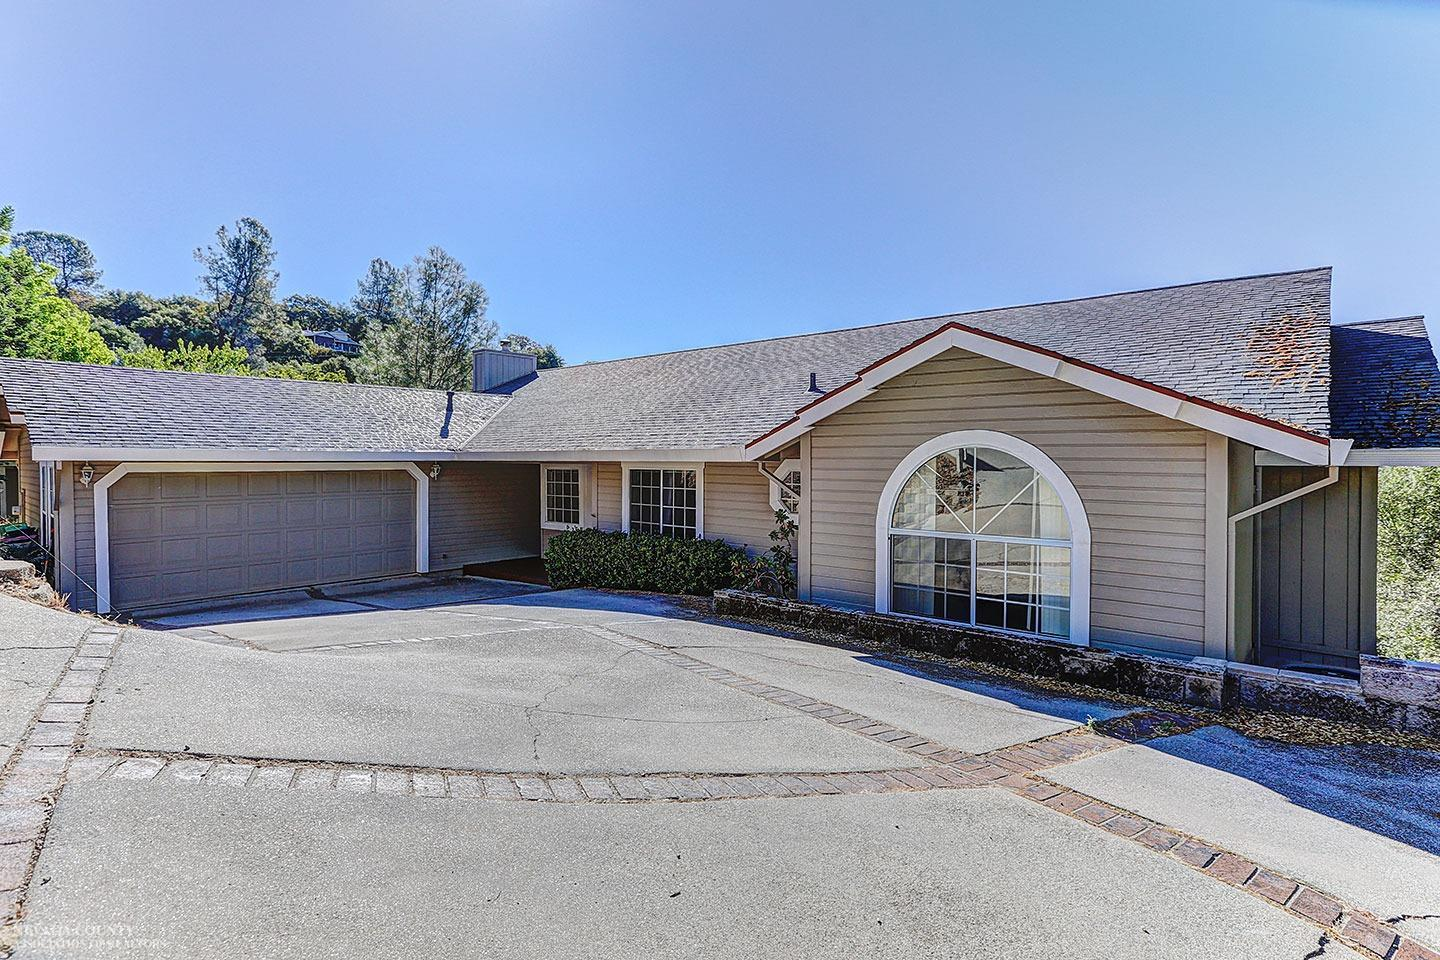 18659 Hummingbird Drive, Penn Valley CA 95946